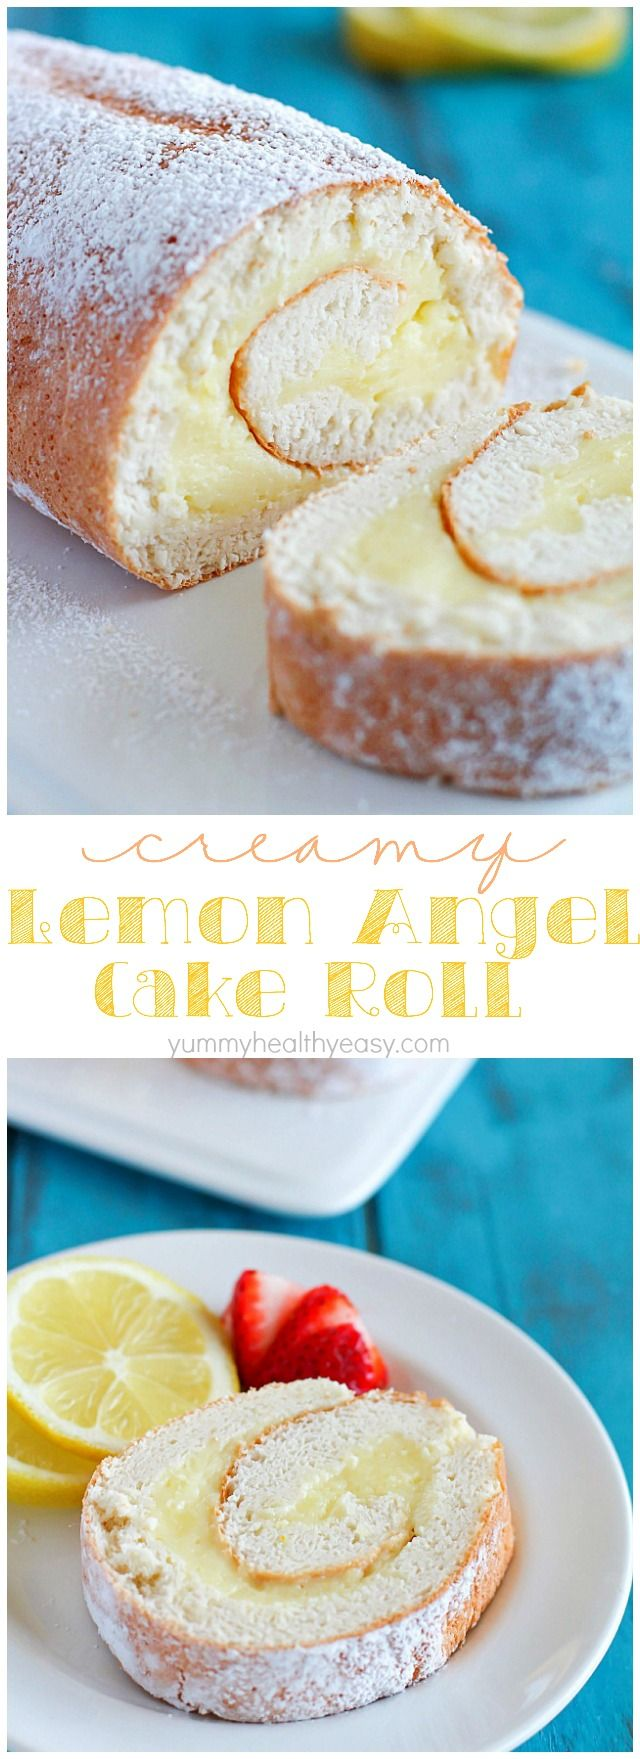 "Dessert!  -->  ""A light angel cake roll filled with a creamy lemon filling. It makes an impressive (lighter) dessert and uses NO butter or oil!"""